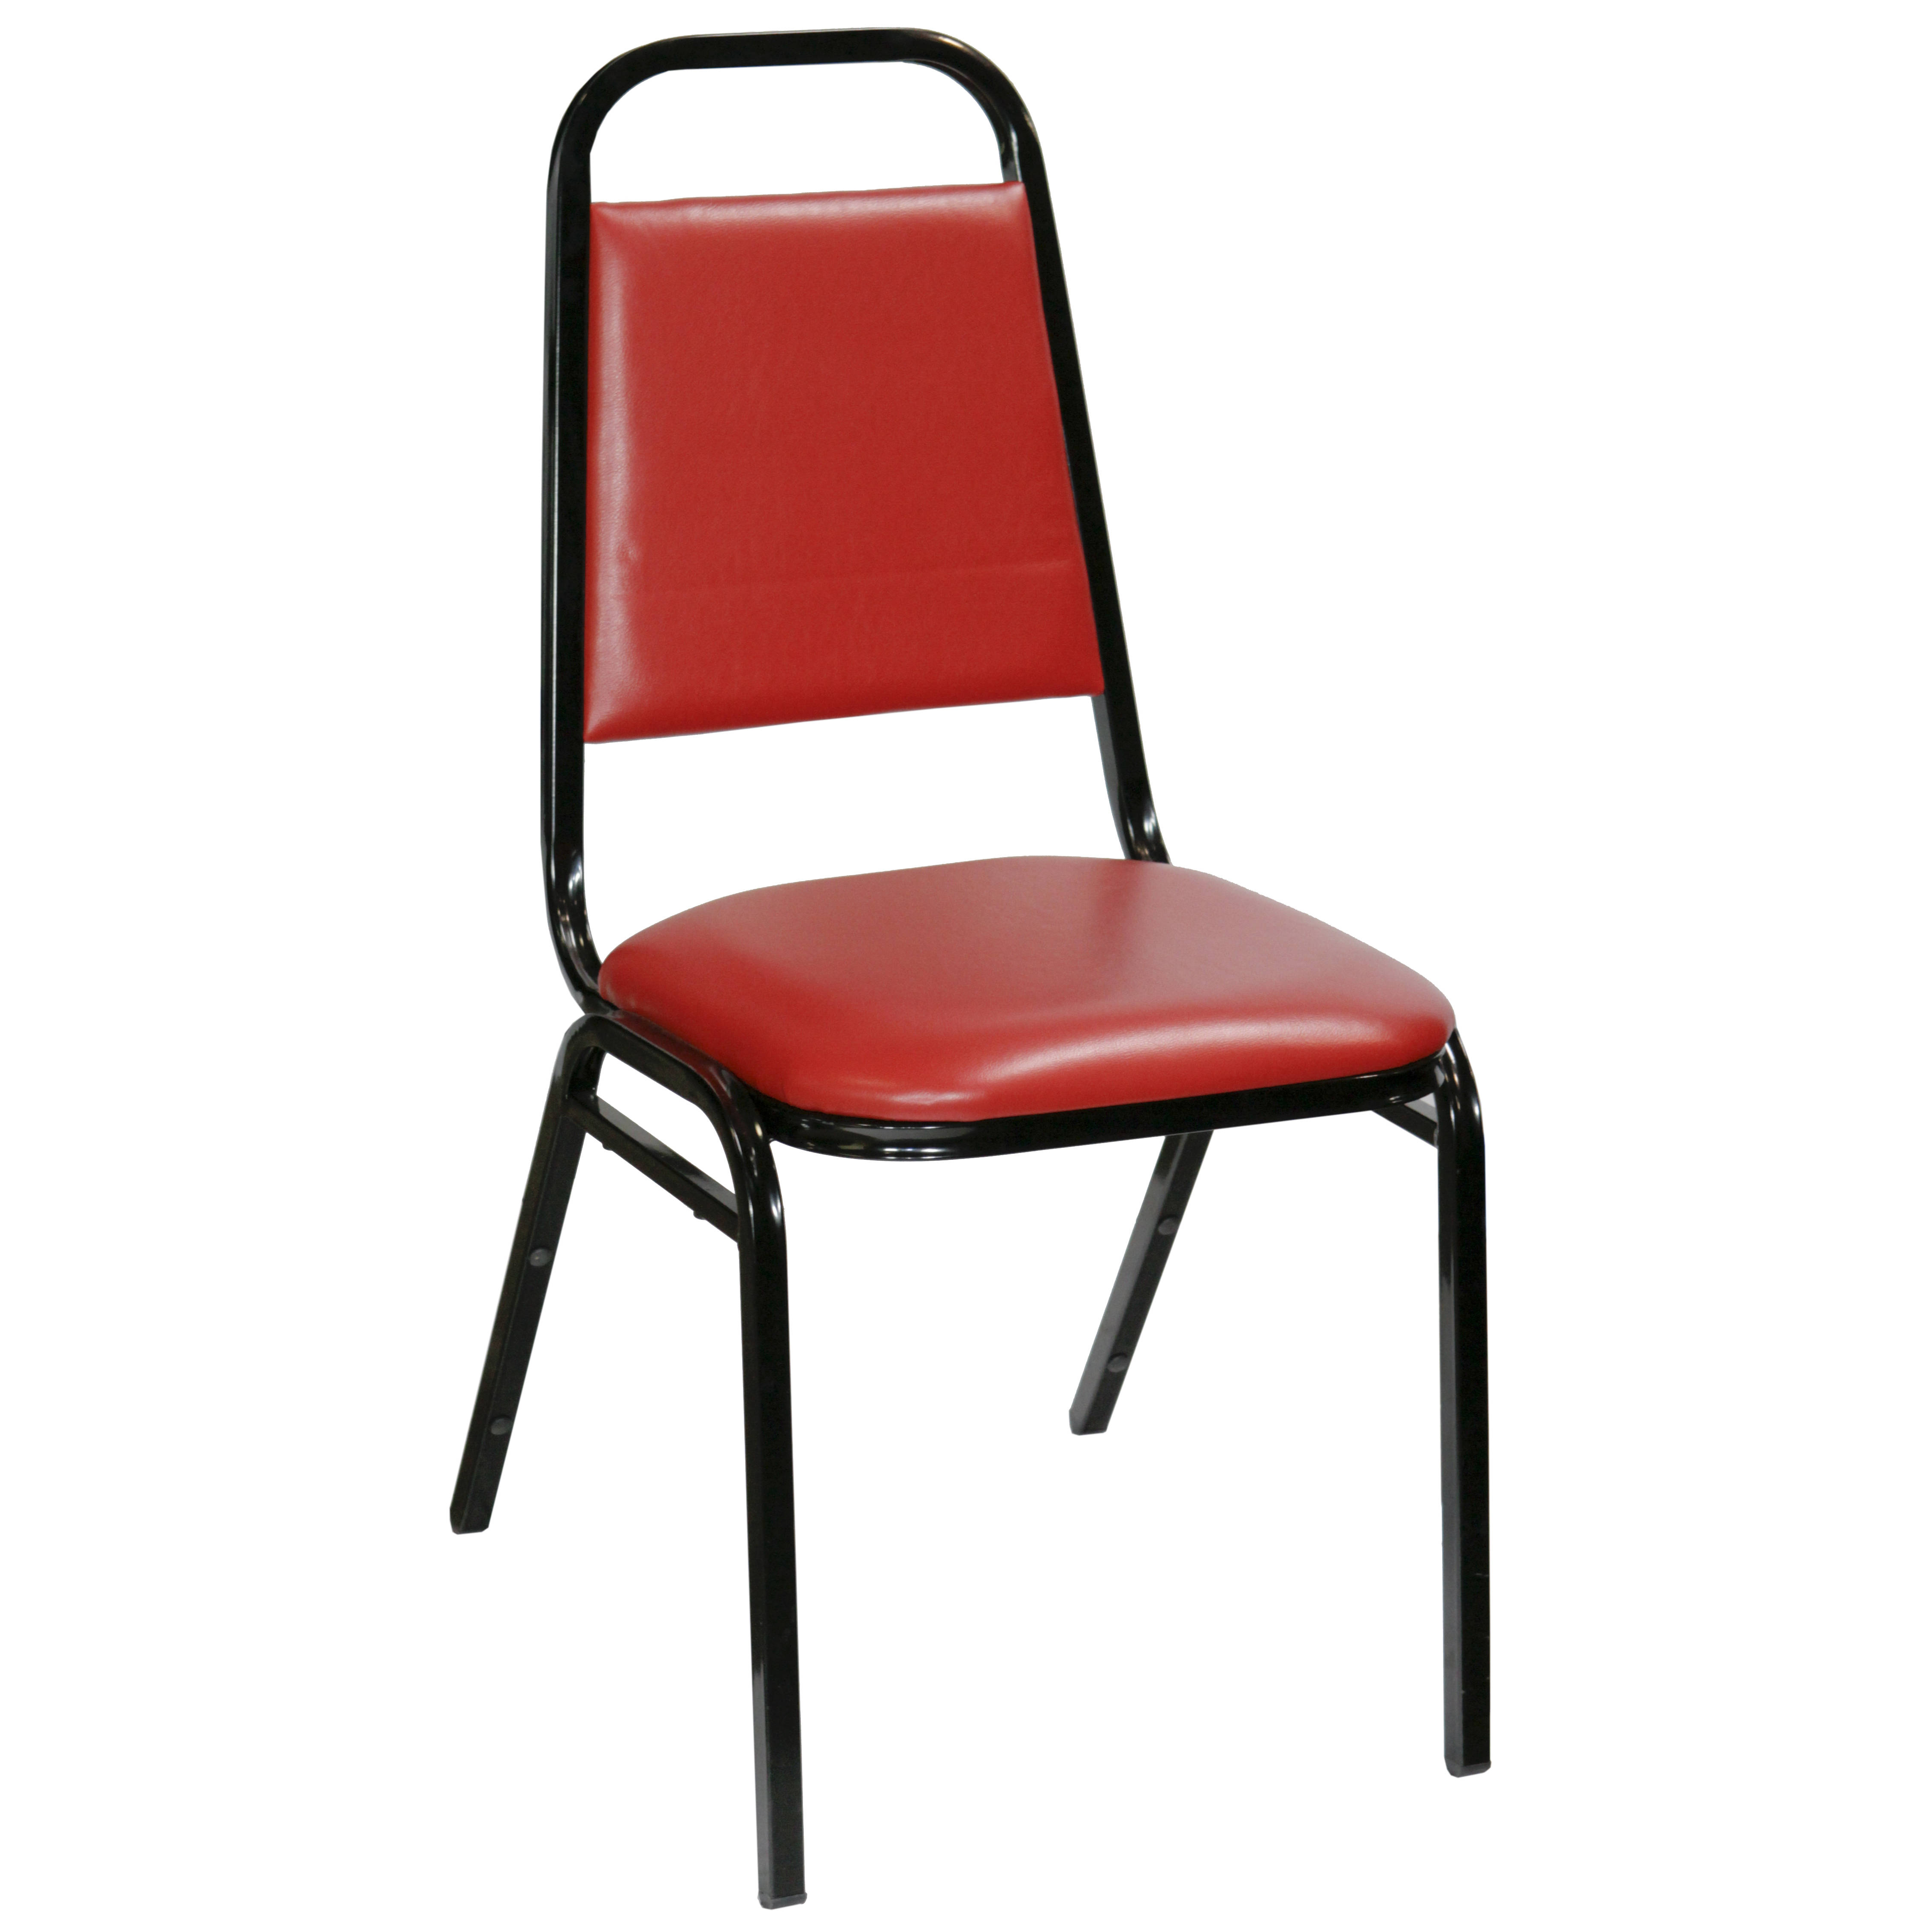 CHAIR  SQUARE BACK STACK  BLACK METAL W RED  Air Designs